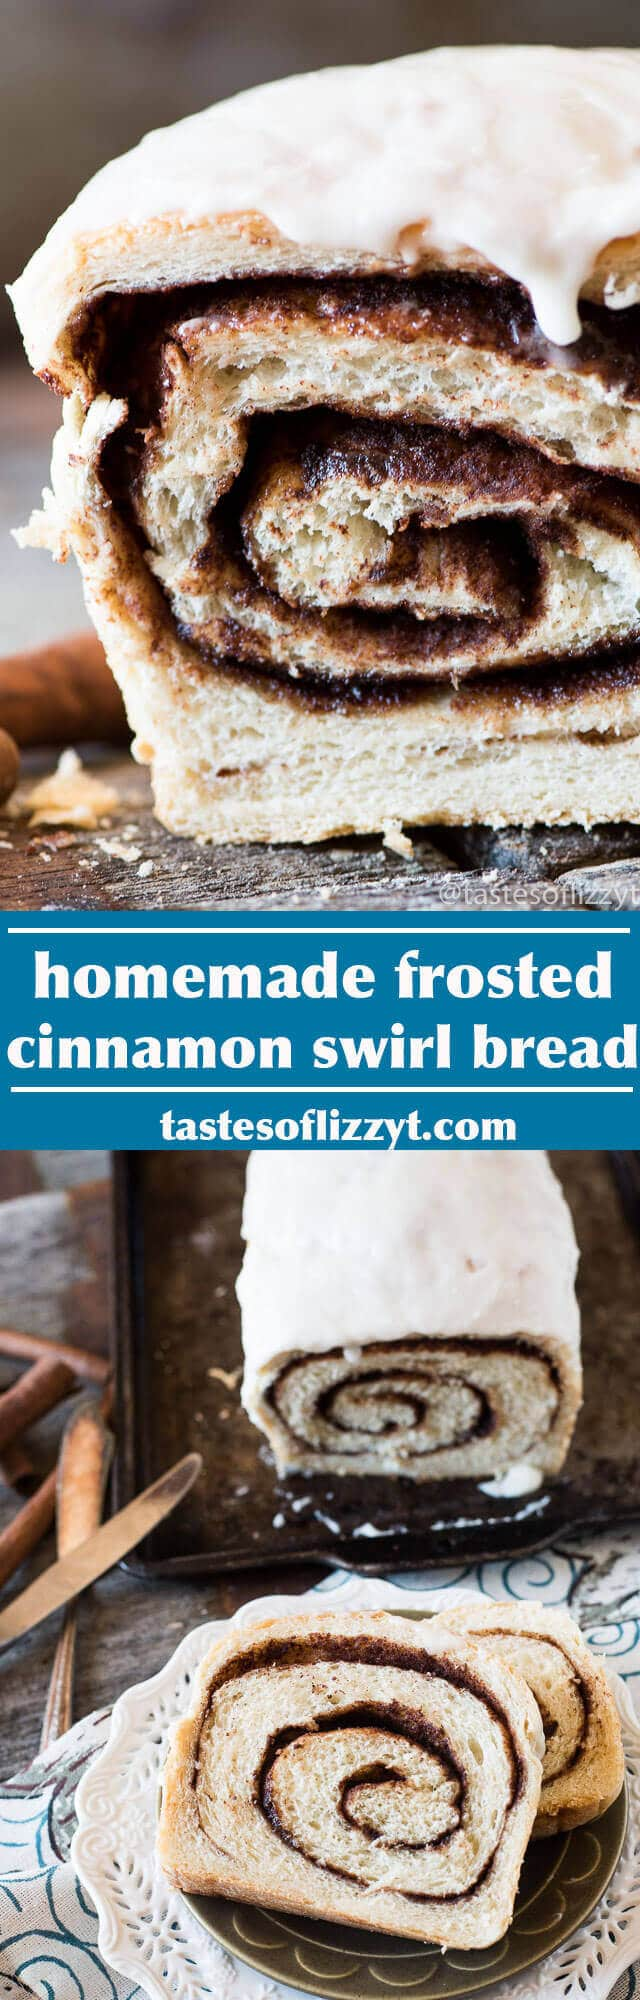 cinnamon swirl bread / homemade cinnamon bread / frosted cinnamon bread recipe / buttermilk cinnamon bread / grandma's bread recipe